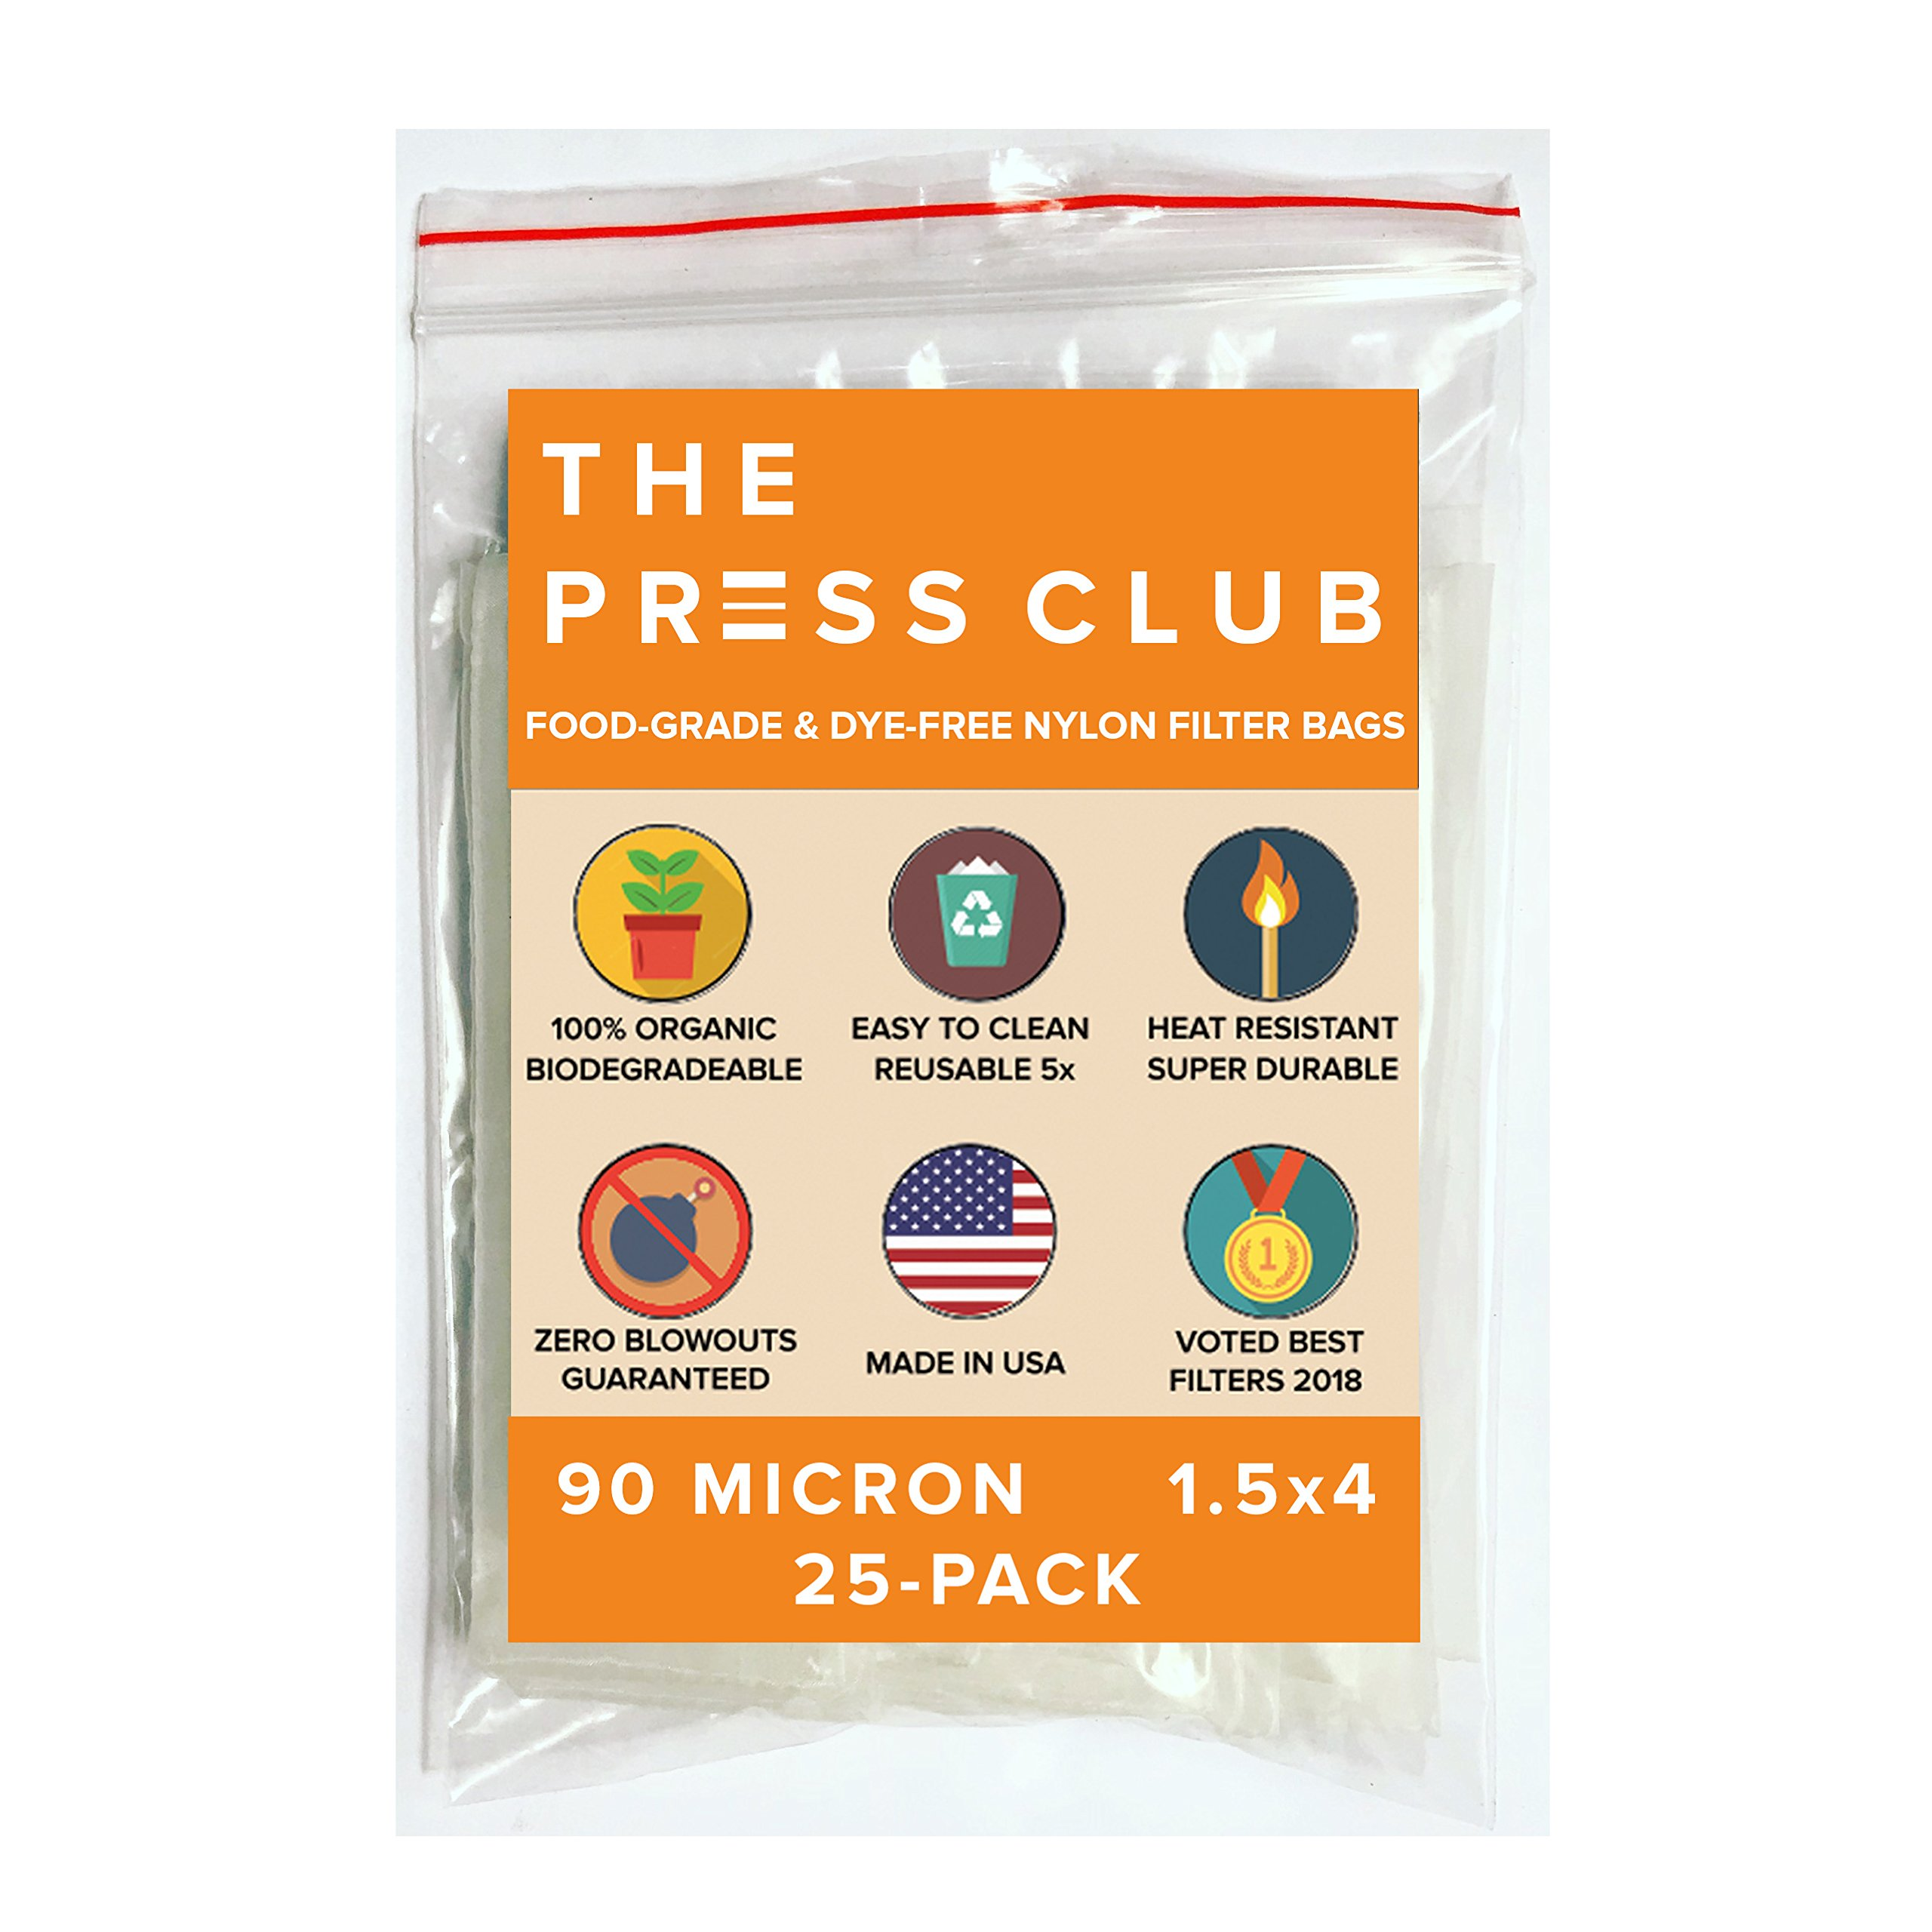 90 Micron   Premium Nylon Tea Filter Press Screen Bags   1.5'' x 4''   25 Pack   Zero Blowout Guarantee   All Micron & Sizes Available by The Press Club